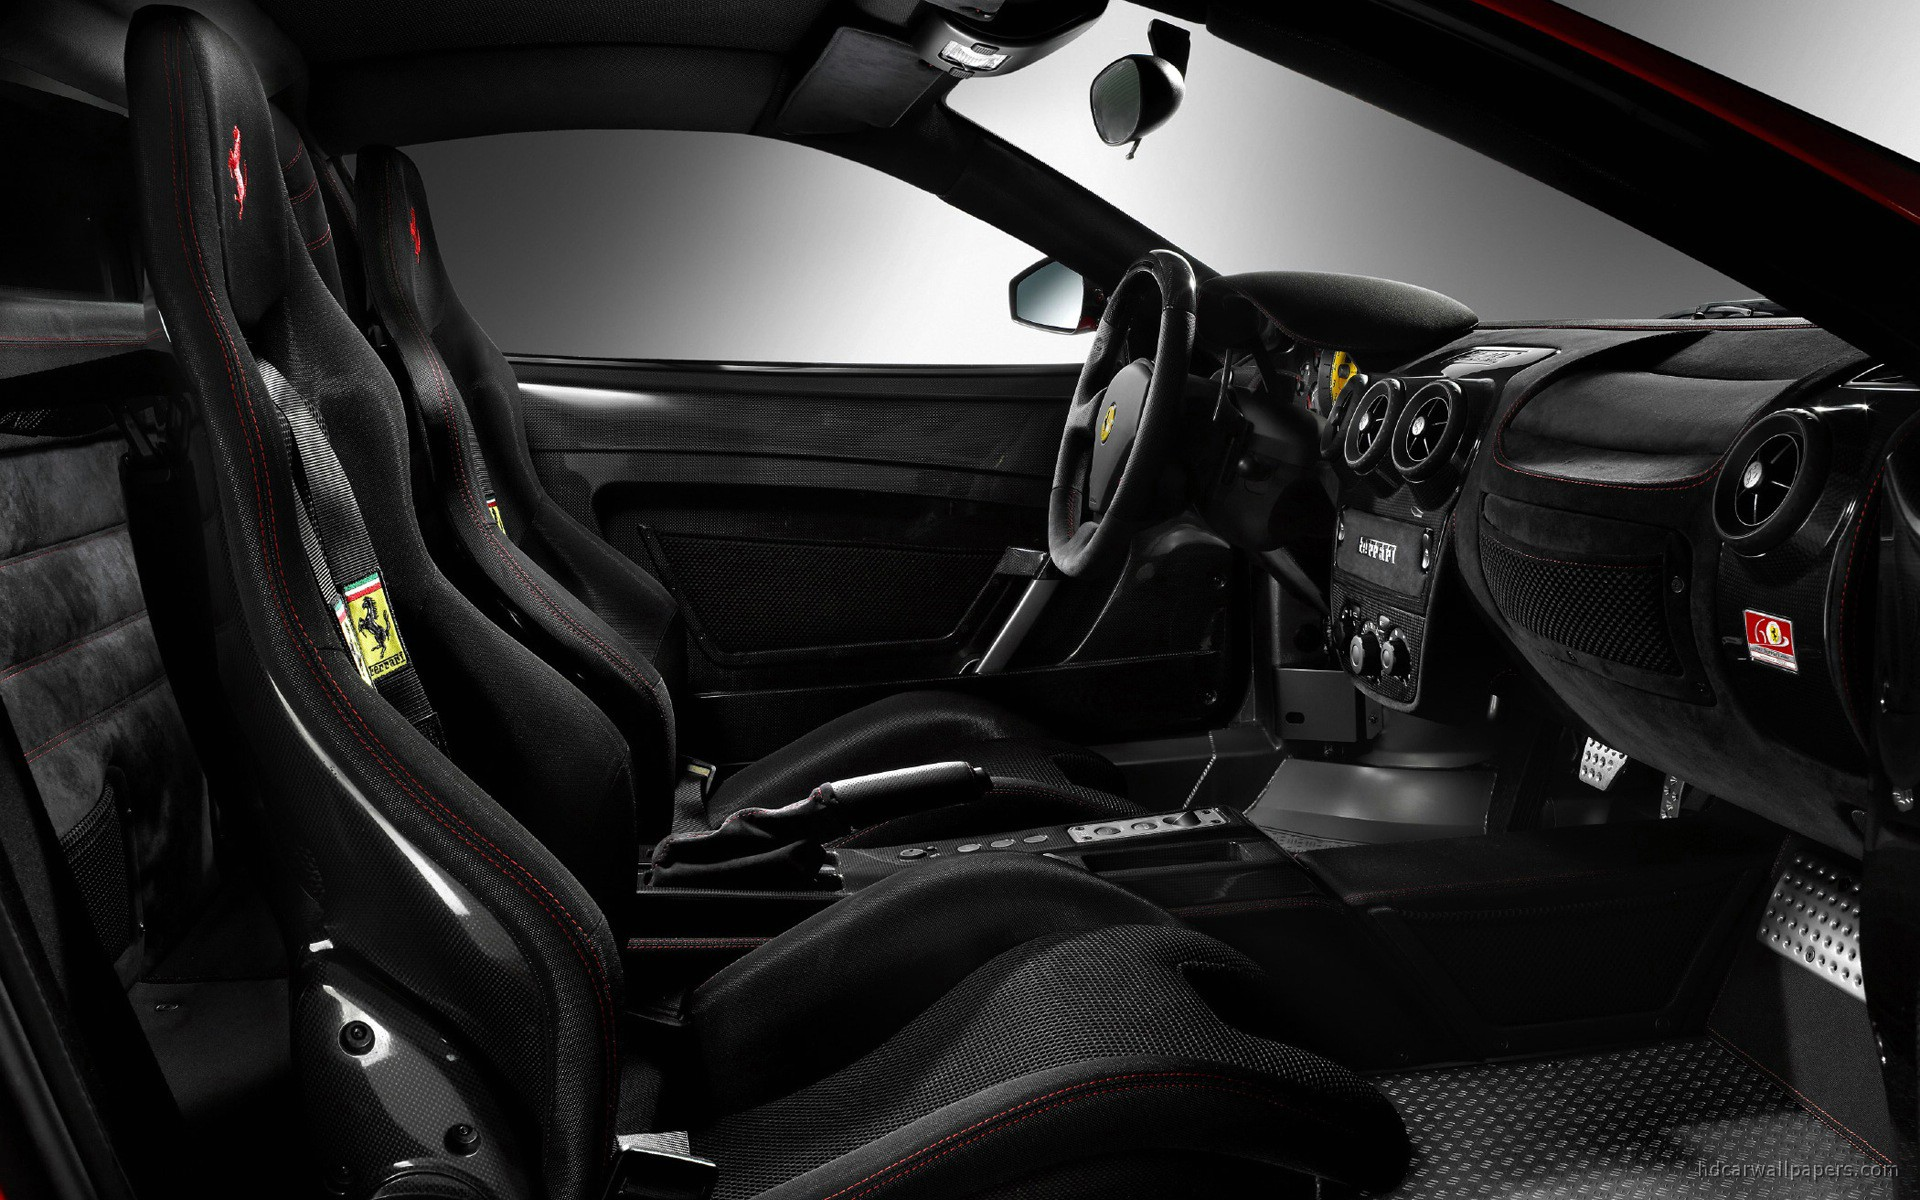 ferrari-f-scuderia-interior-wallpaper-wp5007467